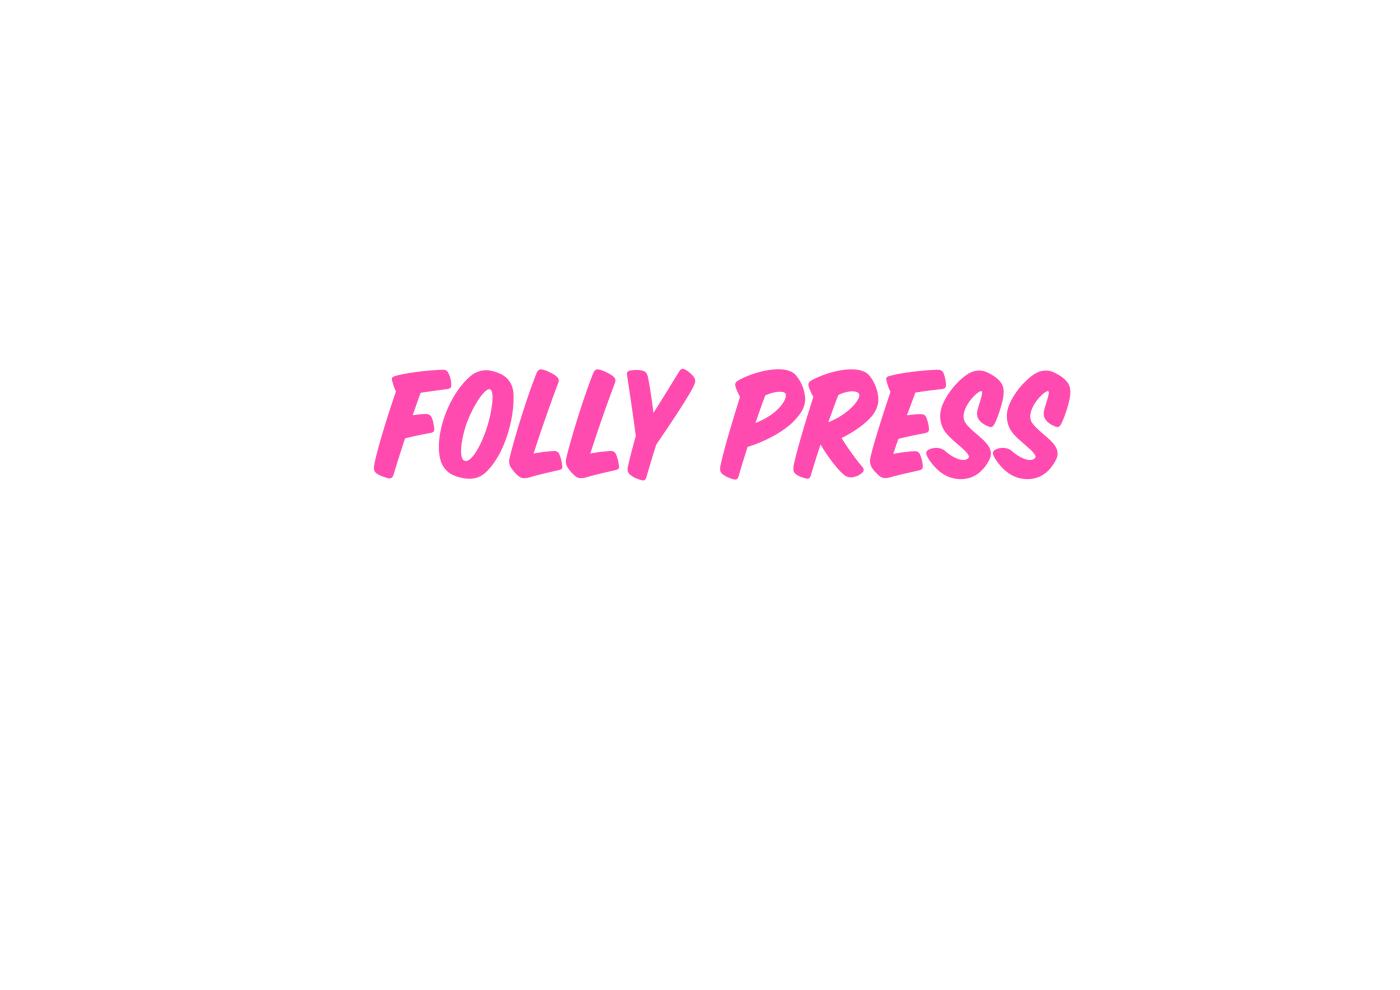 Folly Press